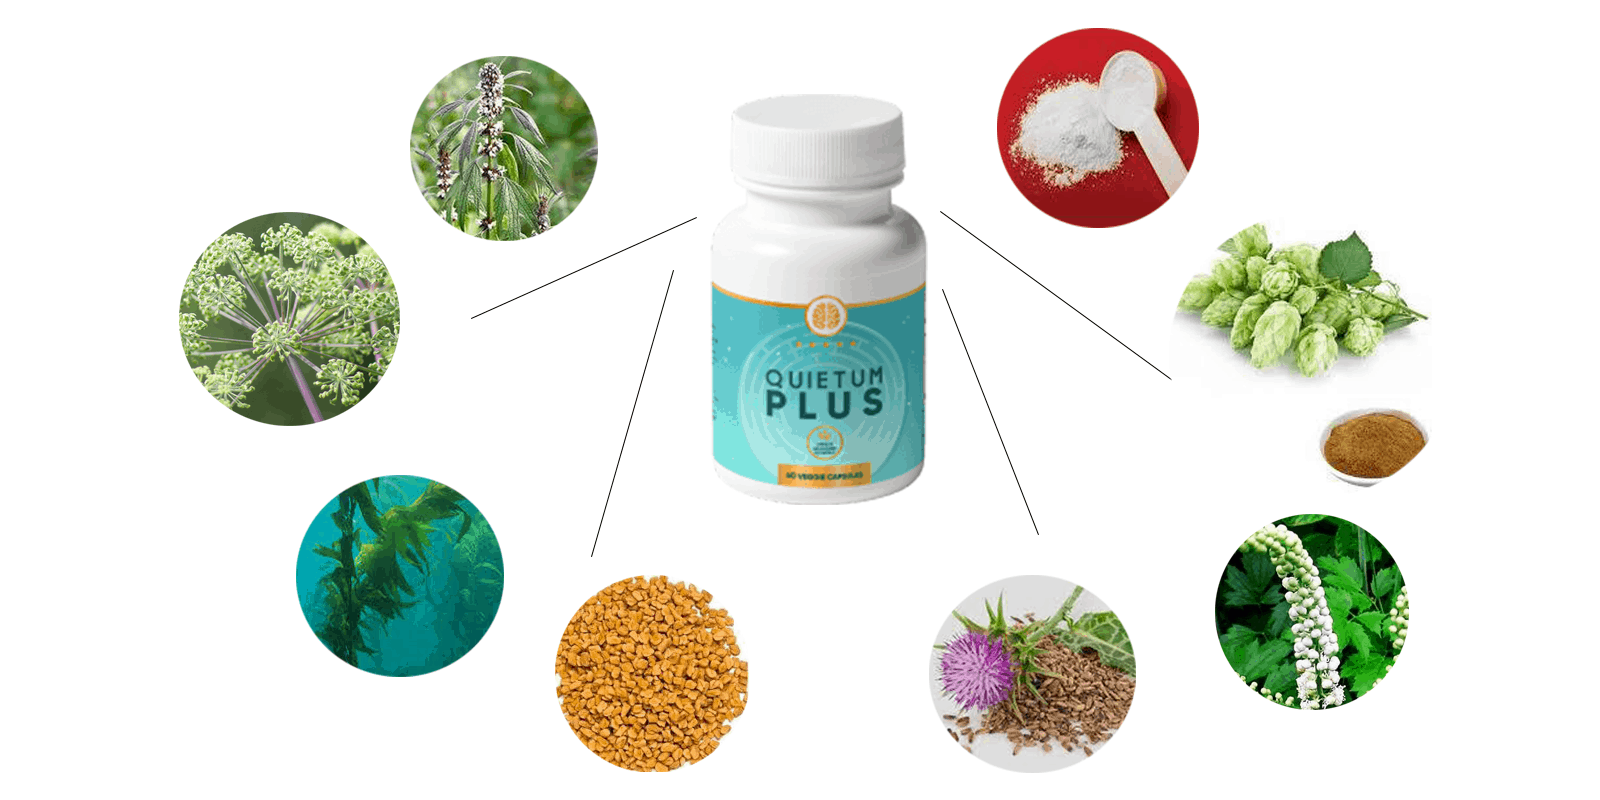 Quietum Plus ingredients